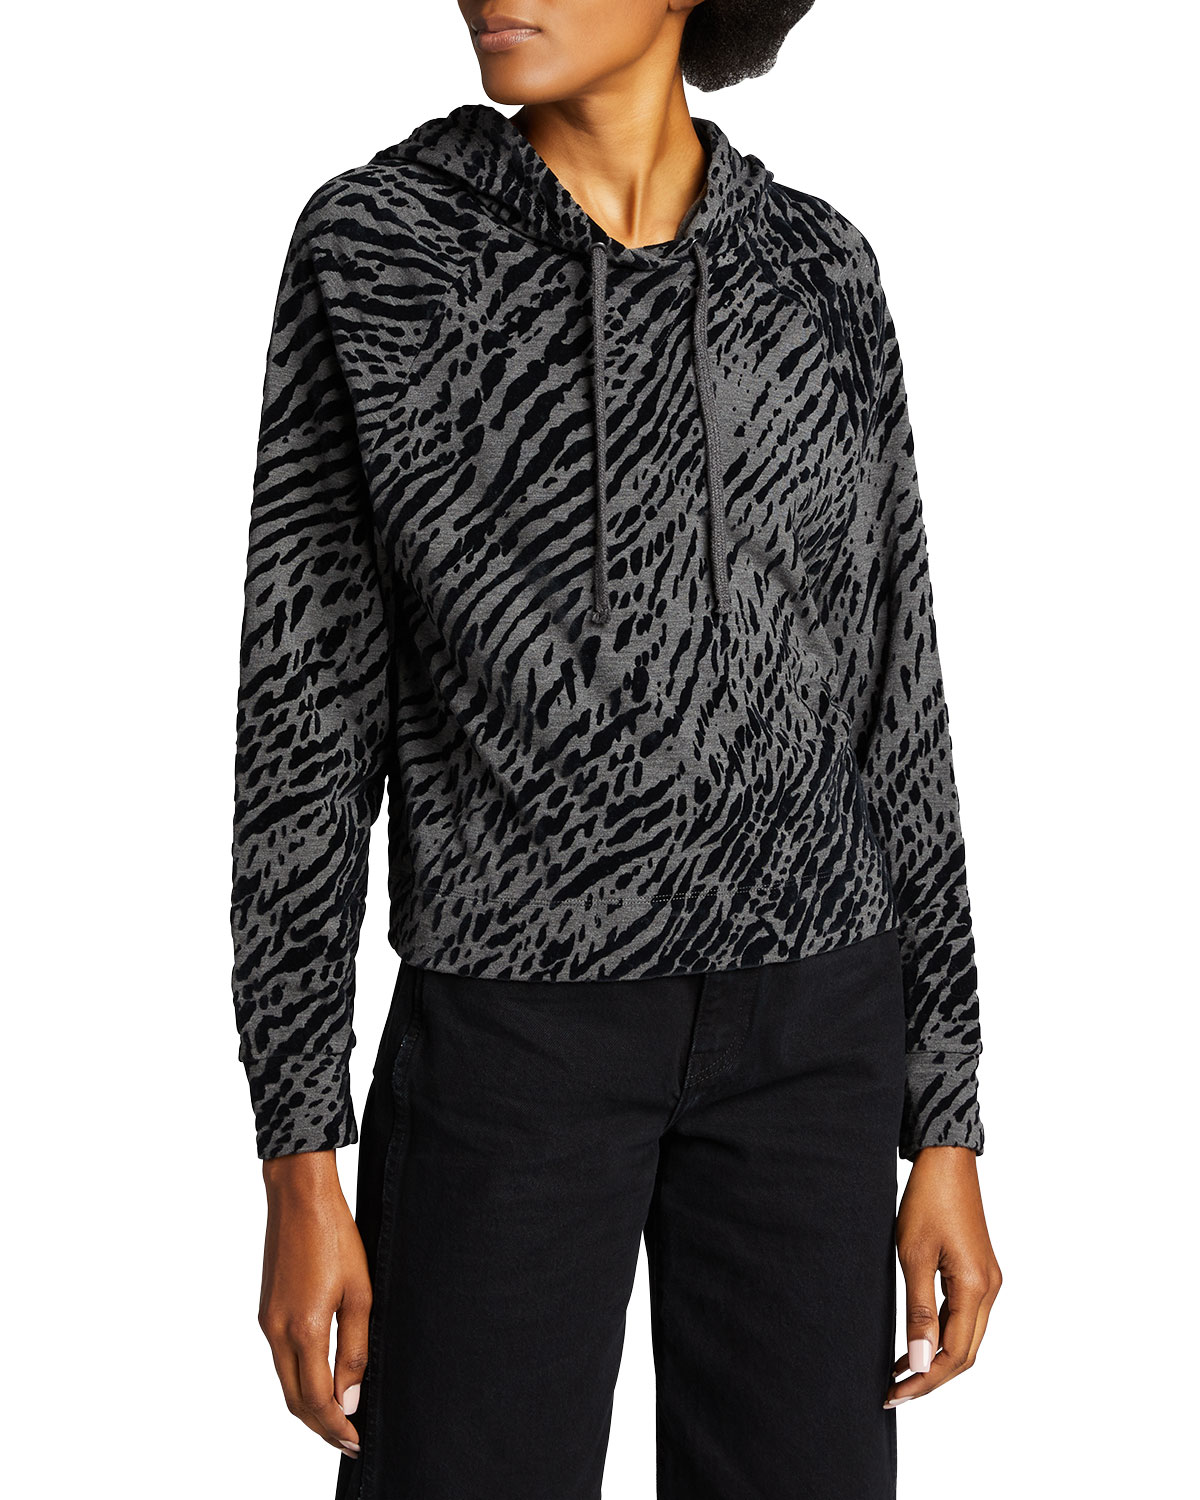 Majestic LEOPARD-PRINT FRENCH TERRY NOVELTY HOODIE